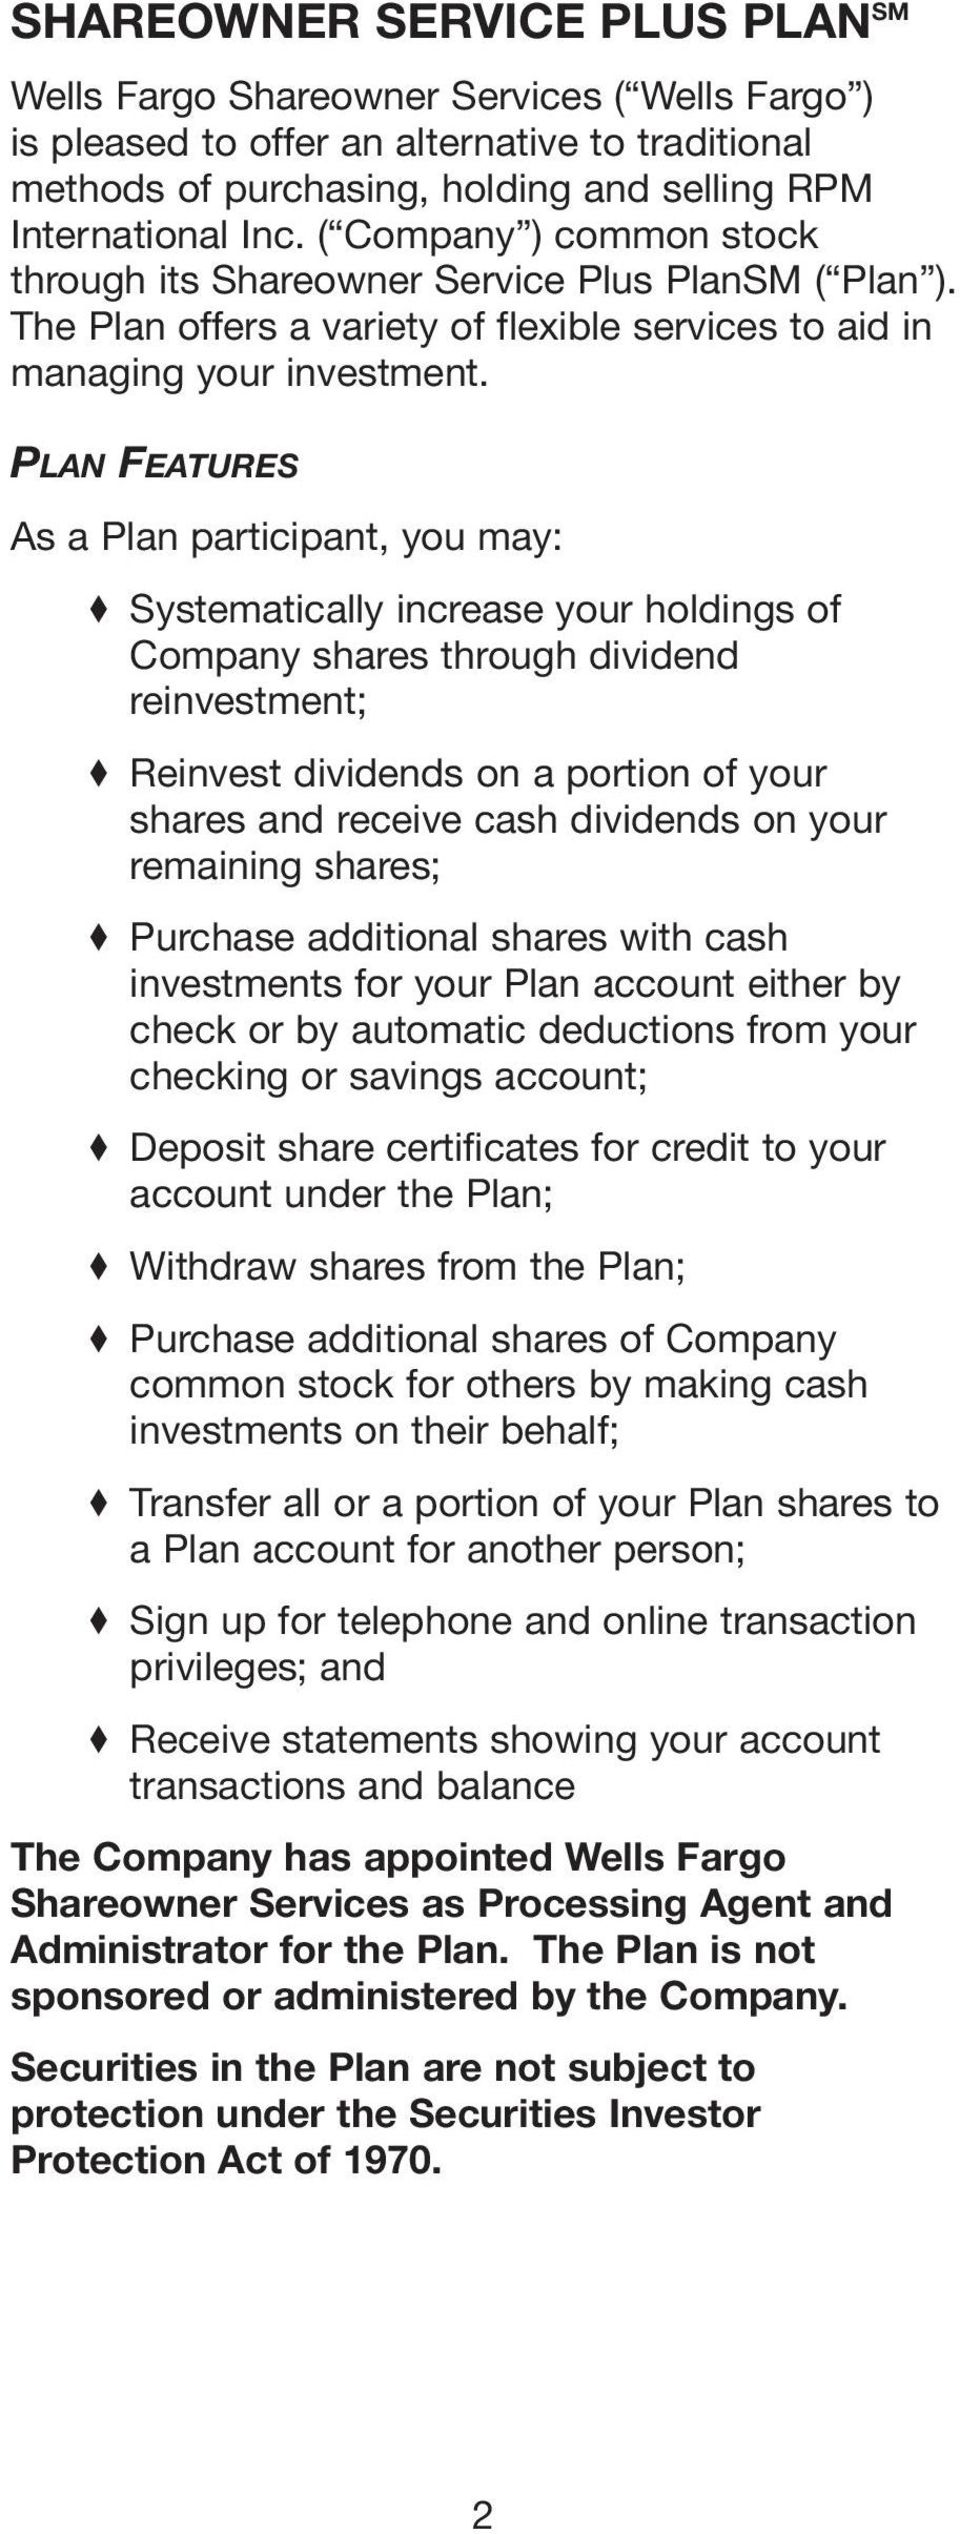 PLAN FEATURES As a Plan participant, you may: Systematically increase your holdings of Company shares through dividend reinvestment; Reinvest dividends on a portion of your shares and receive cash